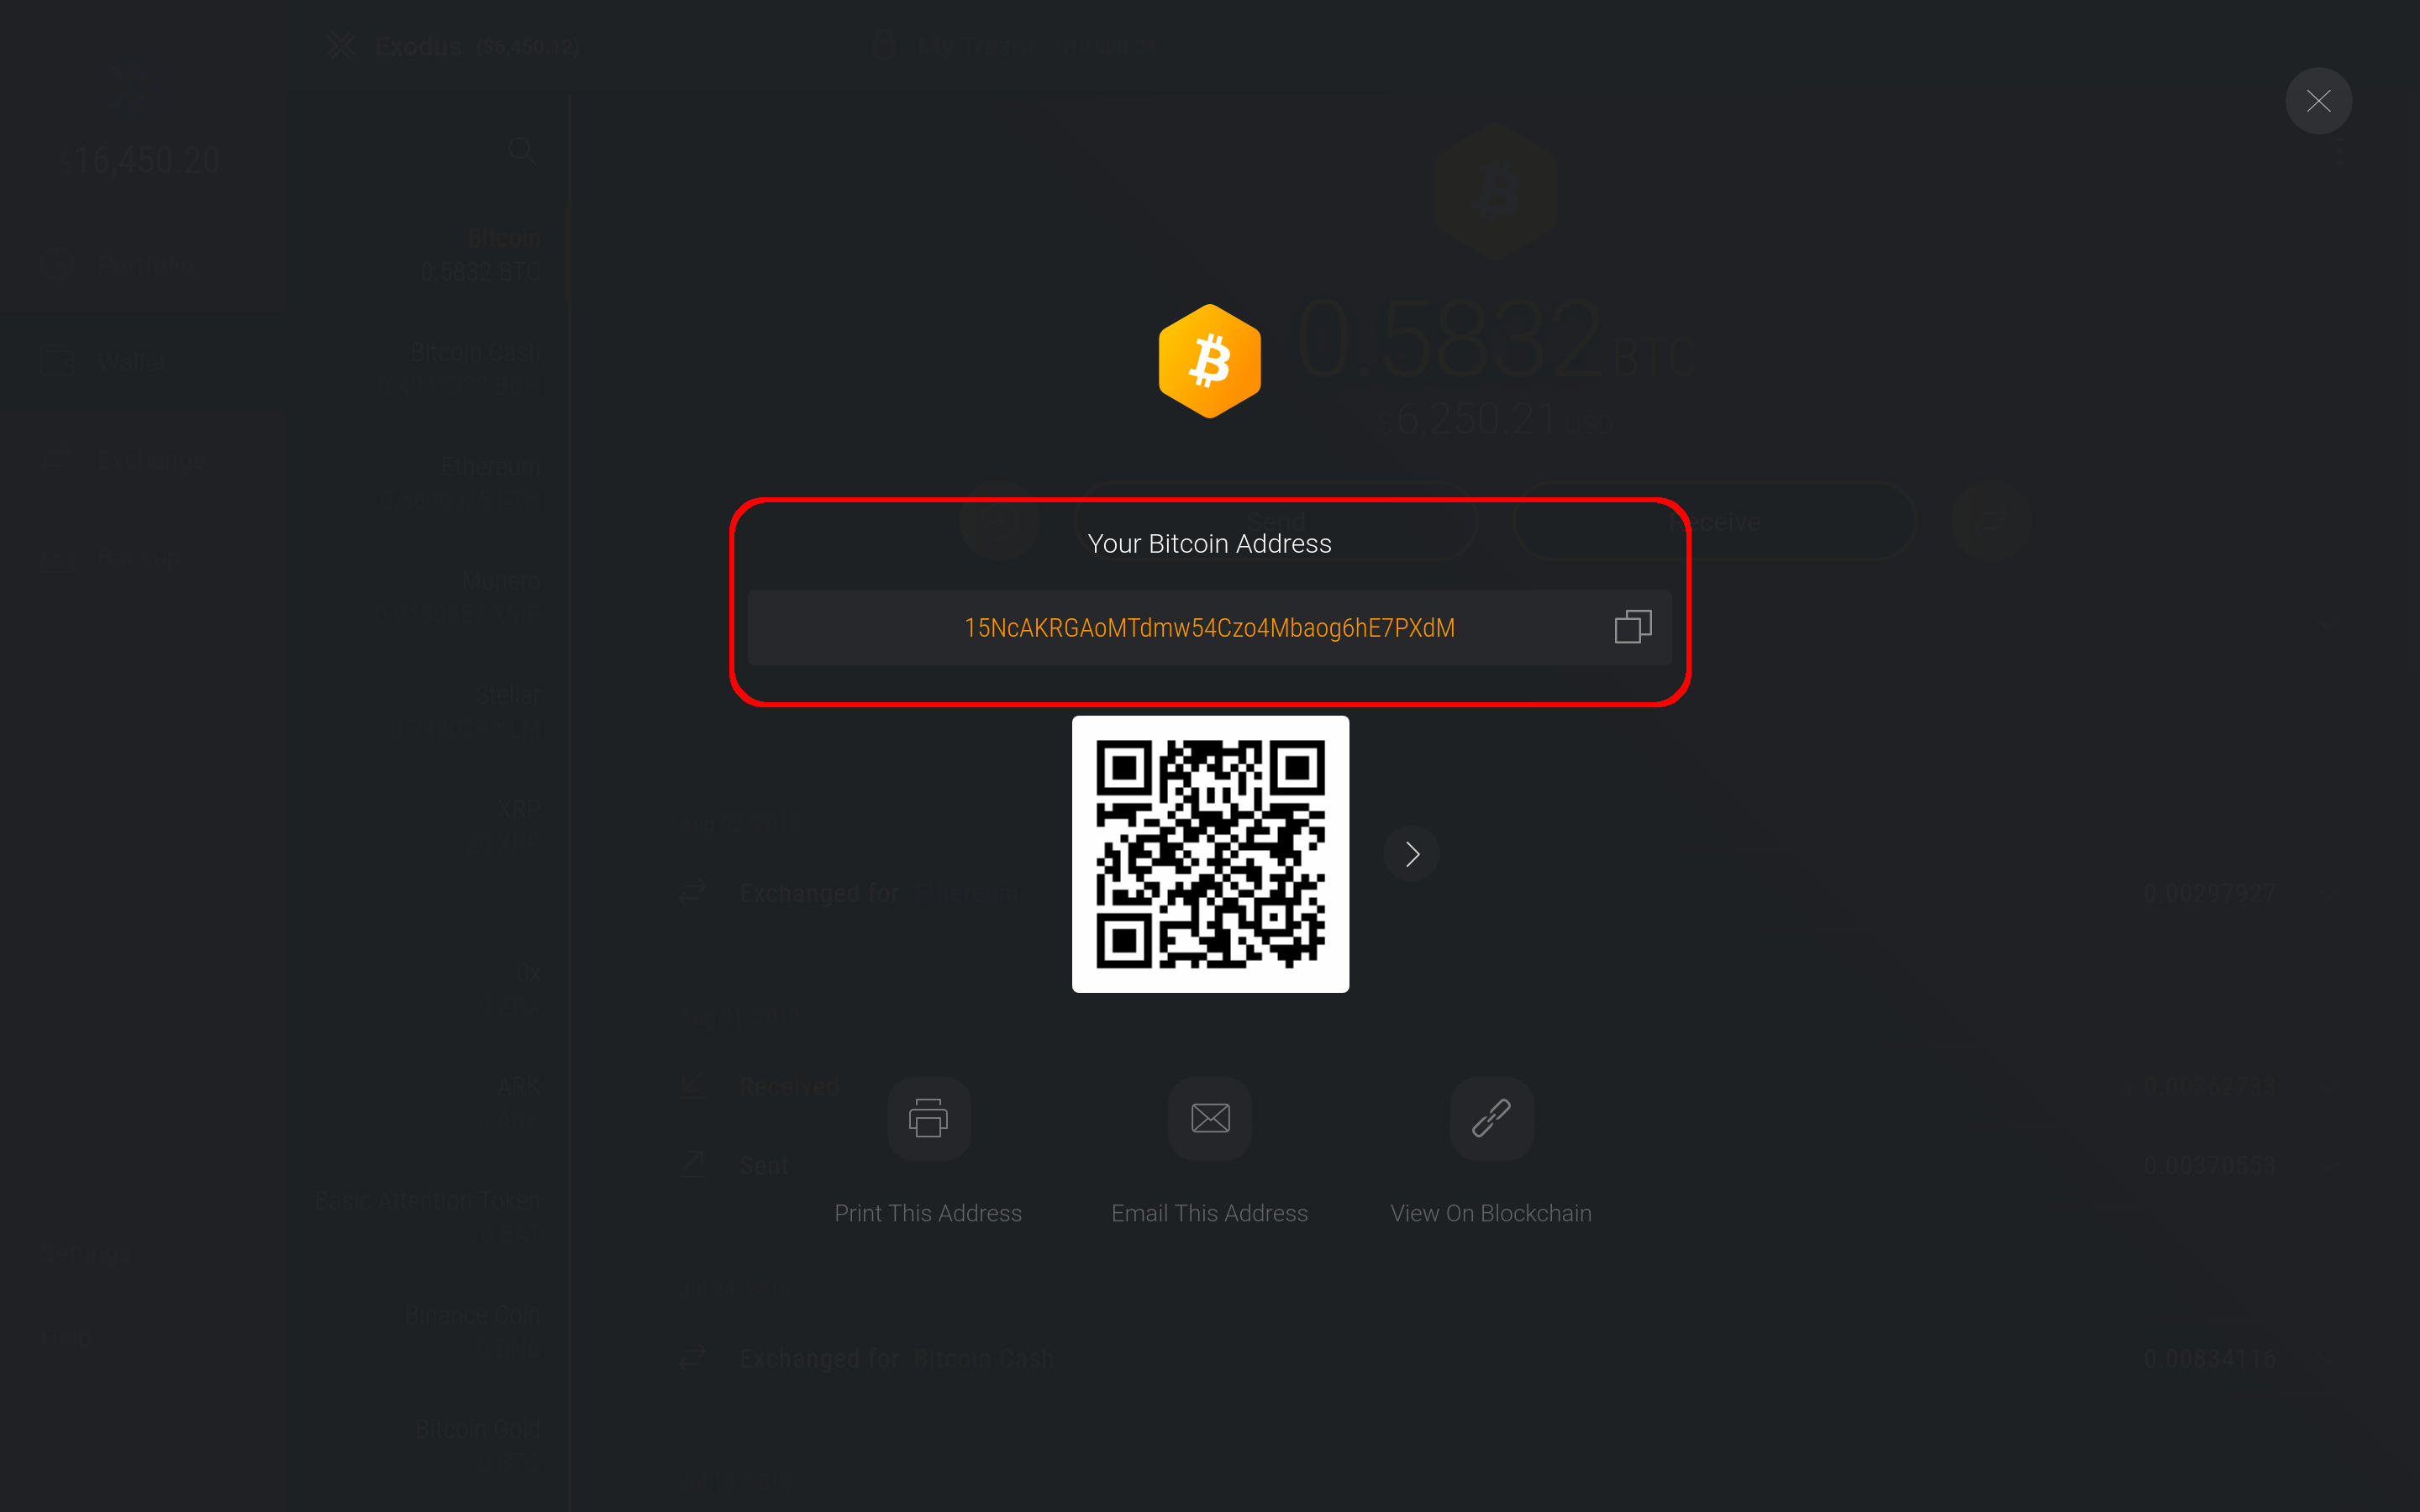 How do I receive cryptocurrency in my wallet (Bitcoin, Ethereum, etc